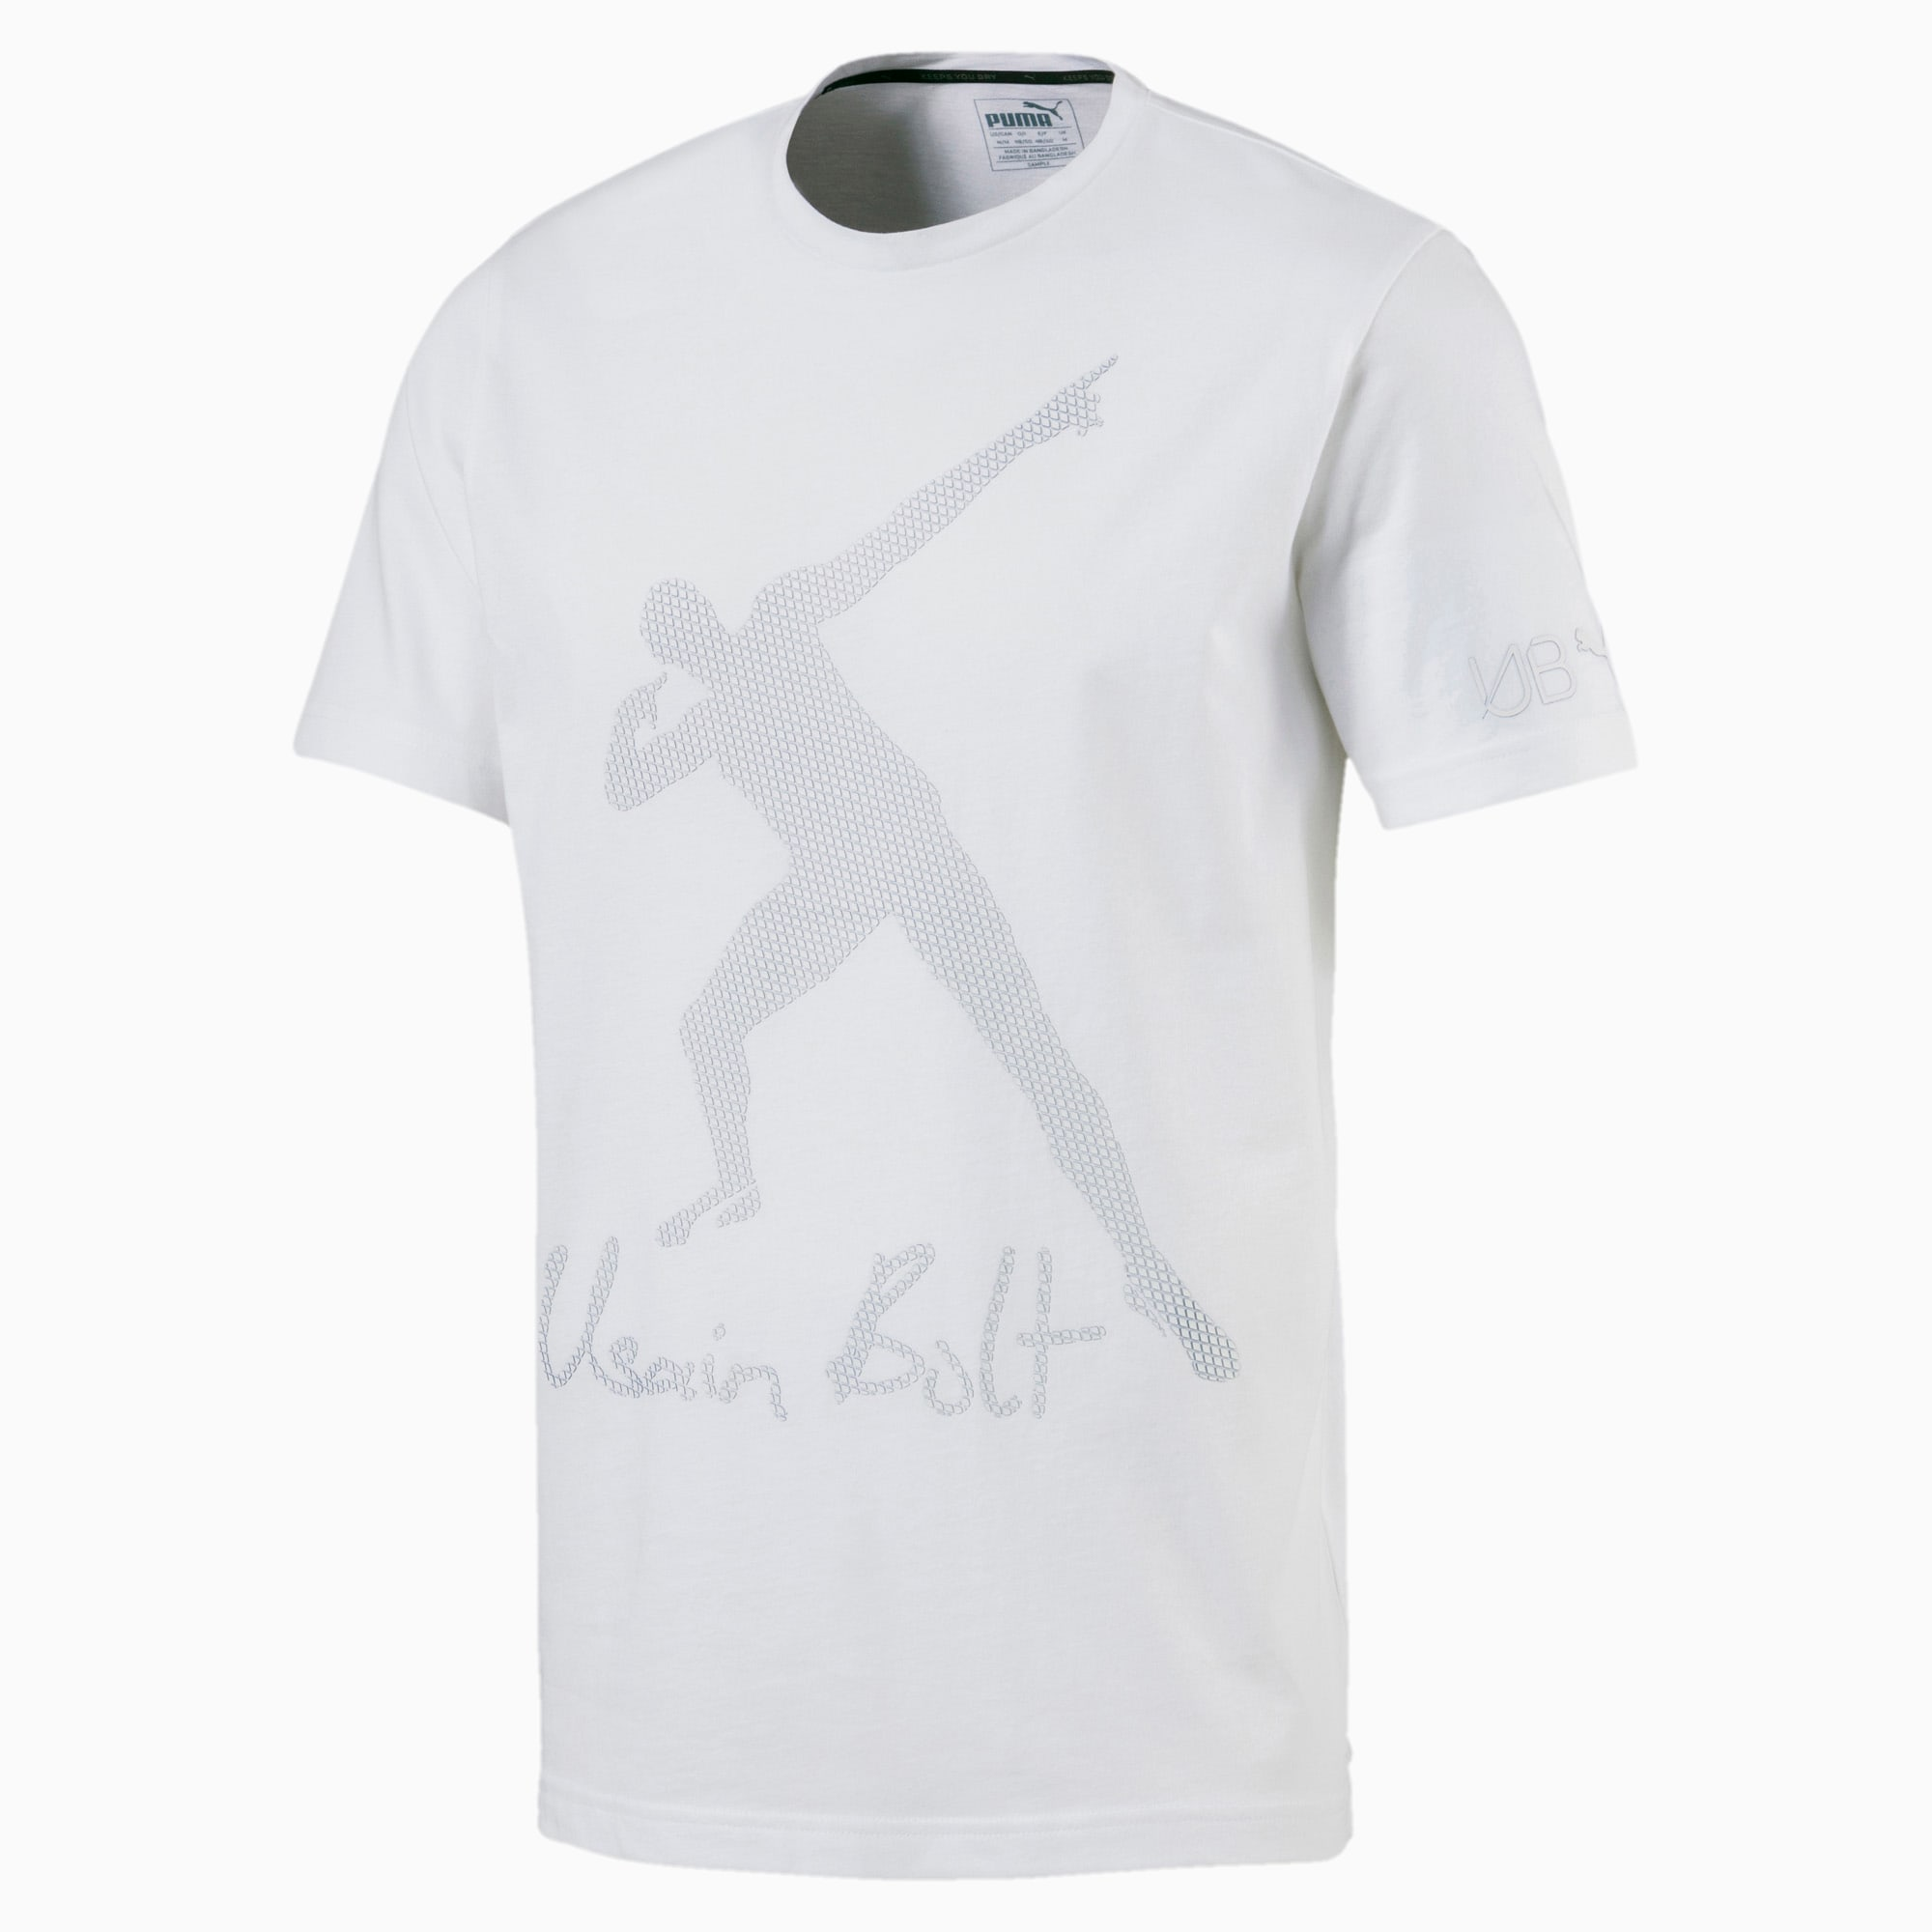 Salón de clases carpintero esposa  Usain Bolt Men's Graphic T-Shirt | PUMA US